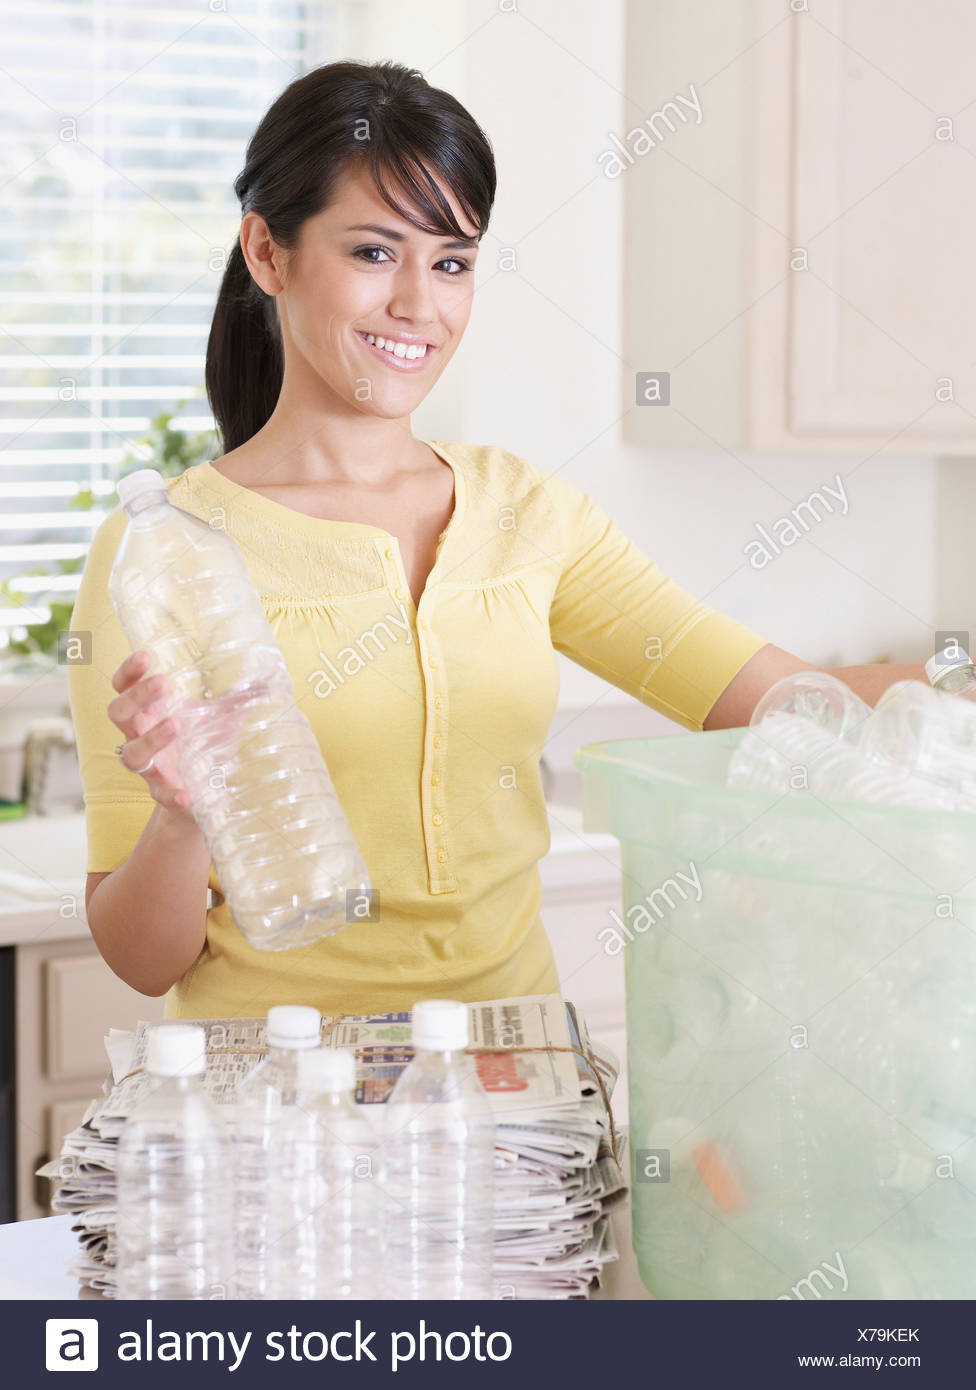 Woman in kitchen with recyclable materials and bin smiling - Stock Image